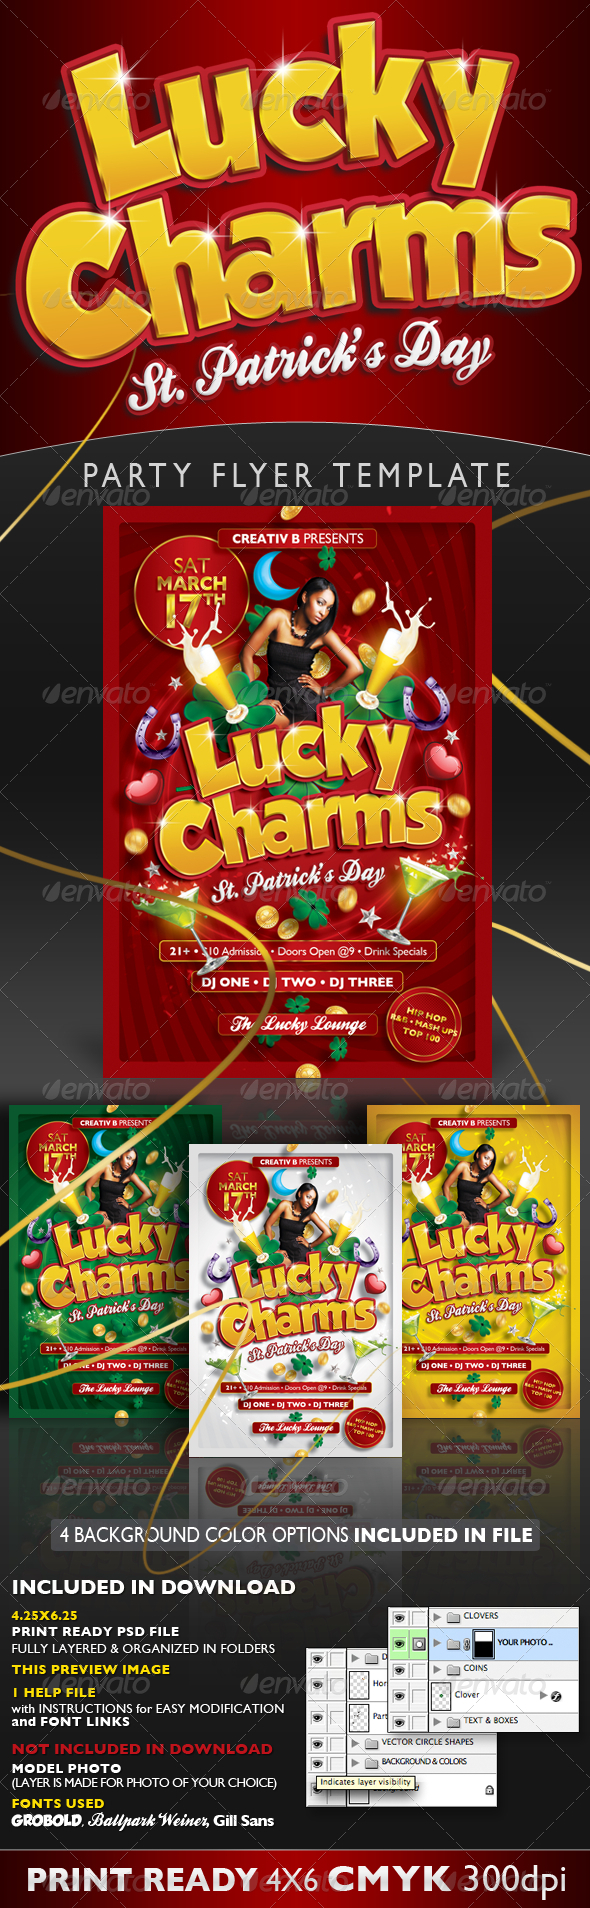 Lucky Charms St. Patrick's Day Flyer Template - Clubs & Parties Events